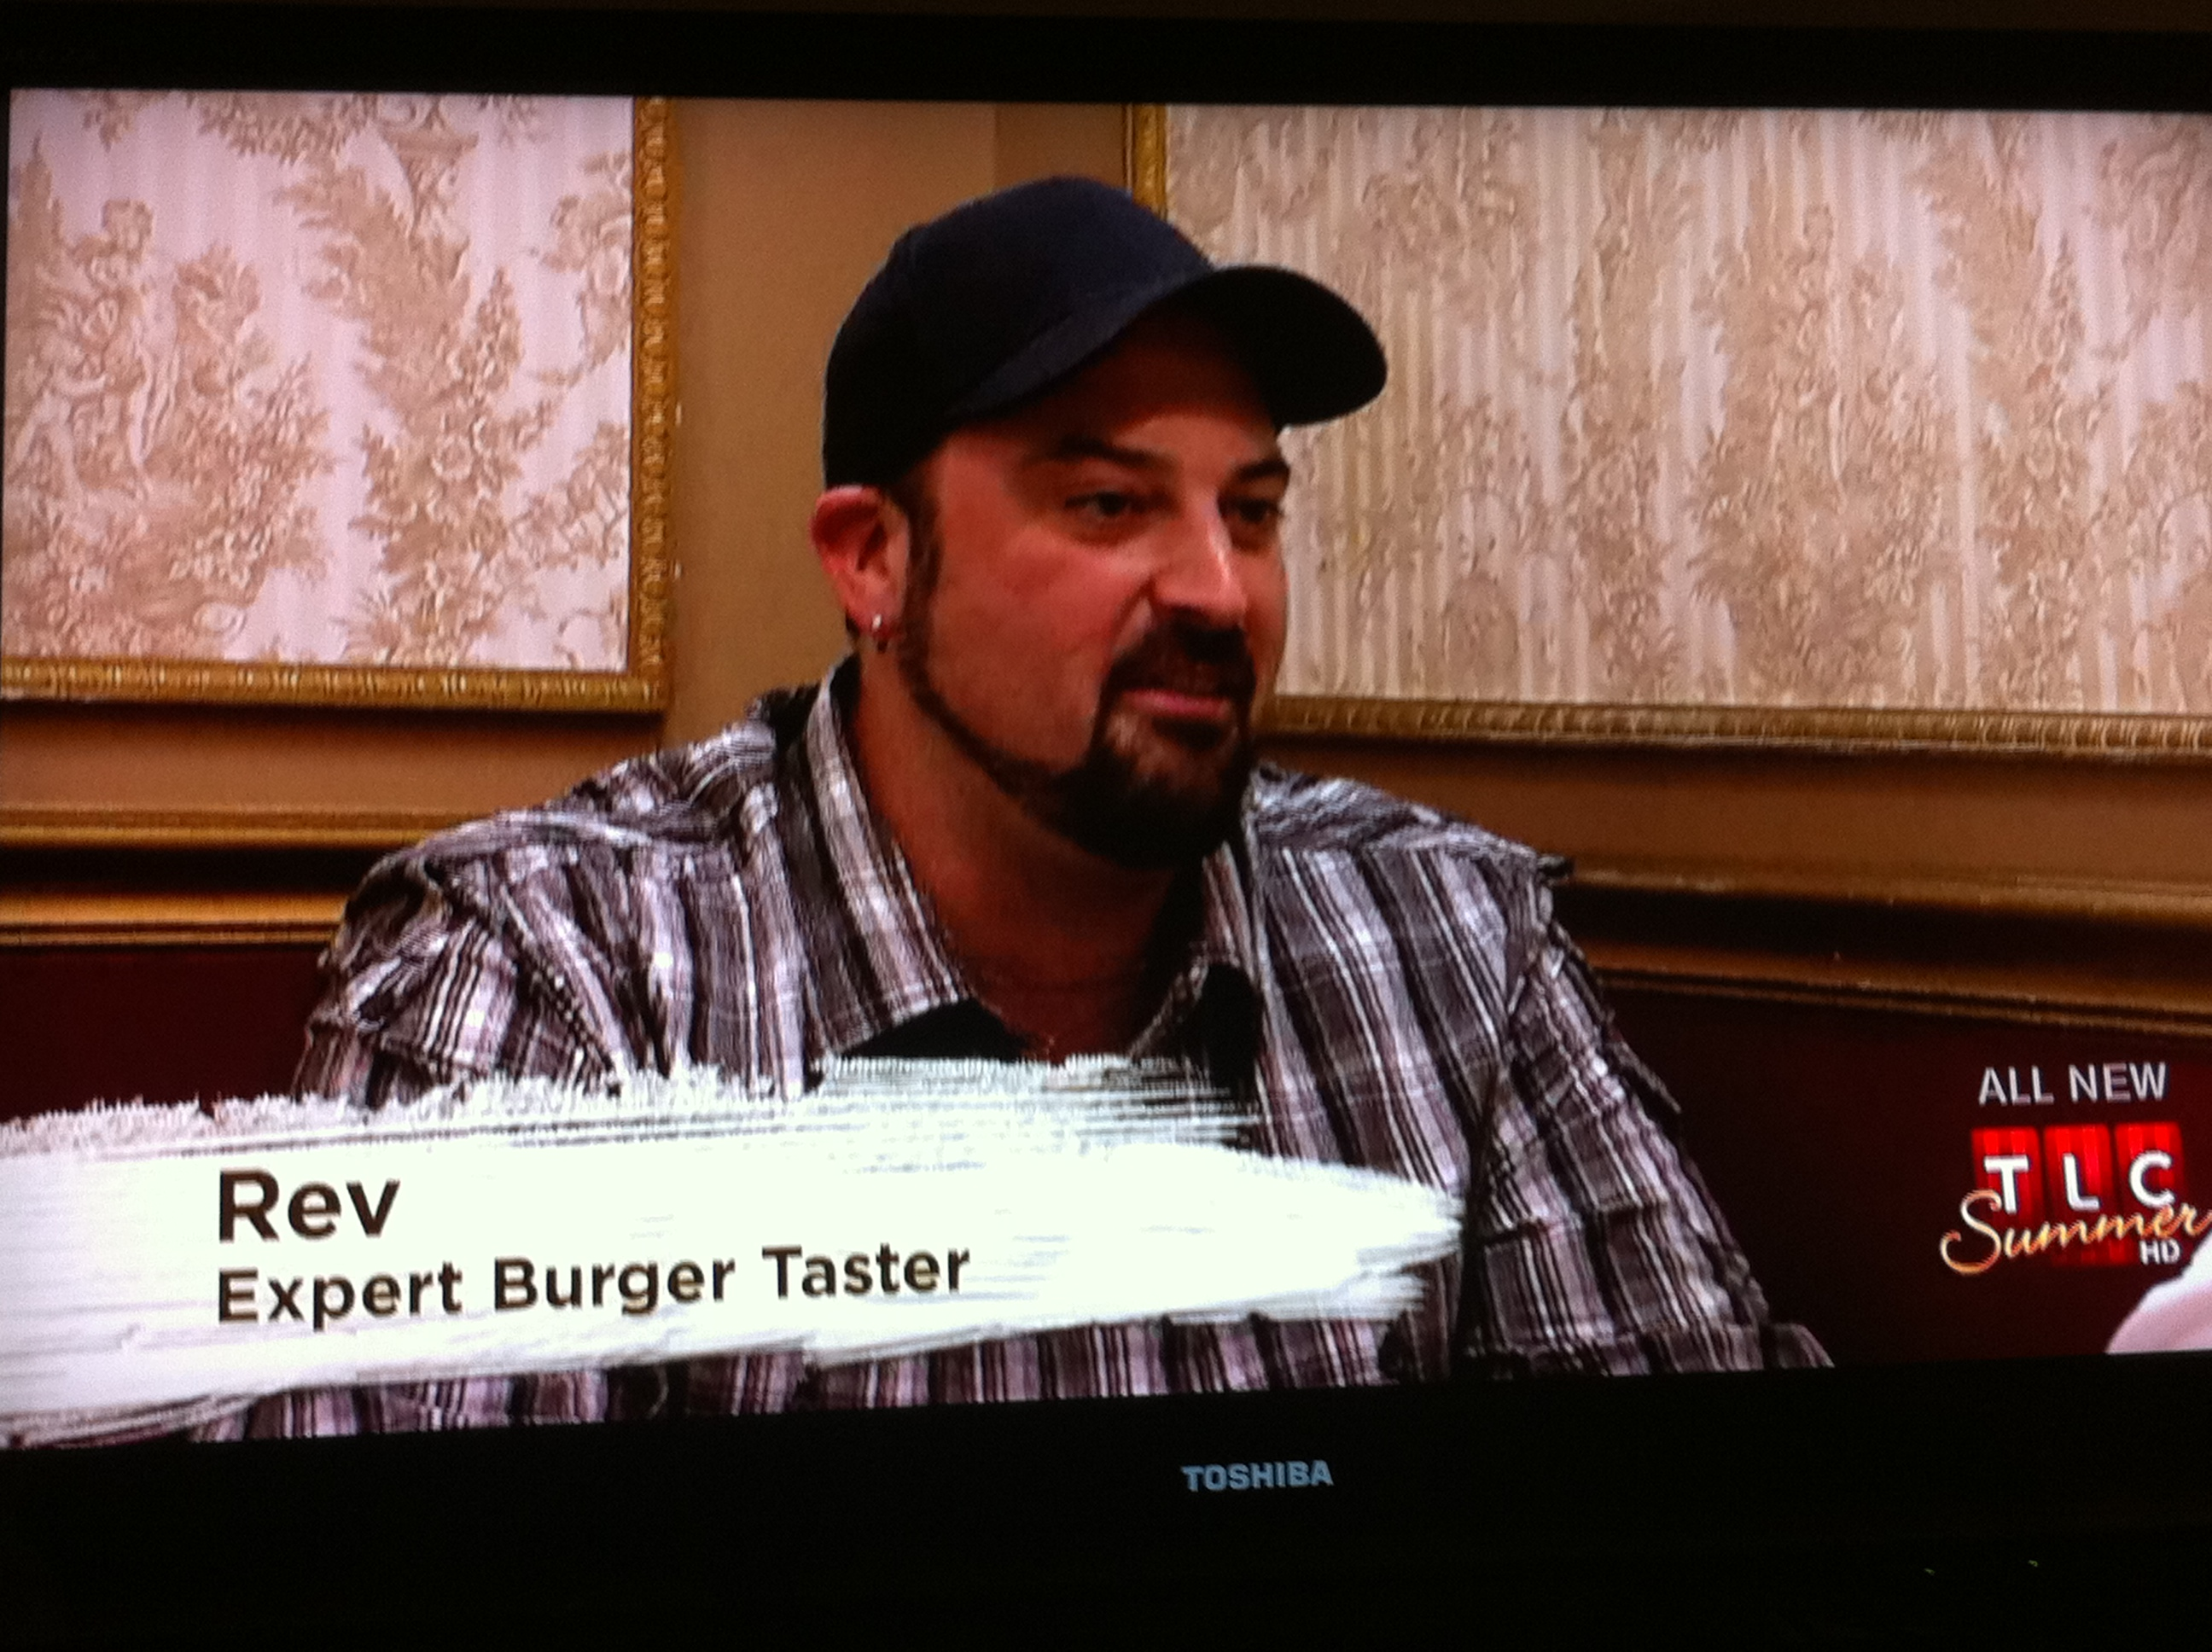 david-rev-ciancio-expert-burger-taster-burger-business-burger-famous-tv_1454